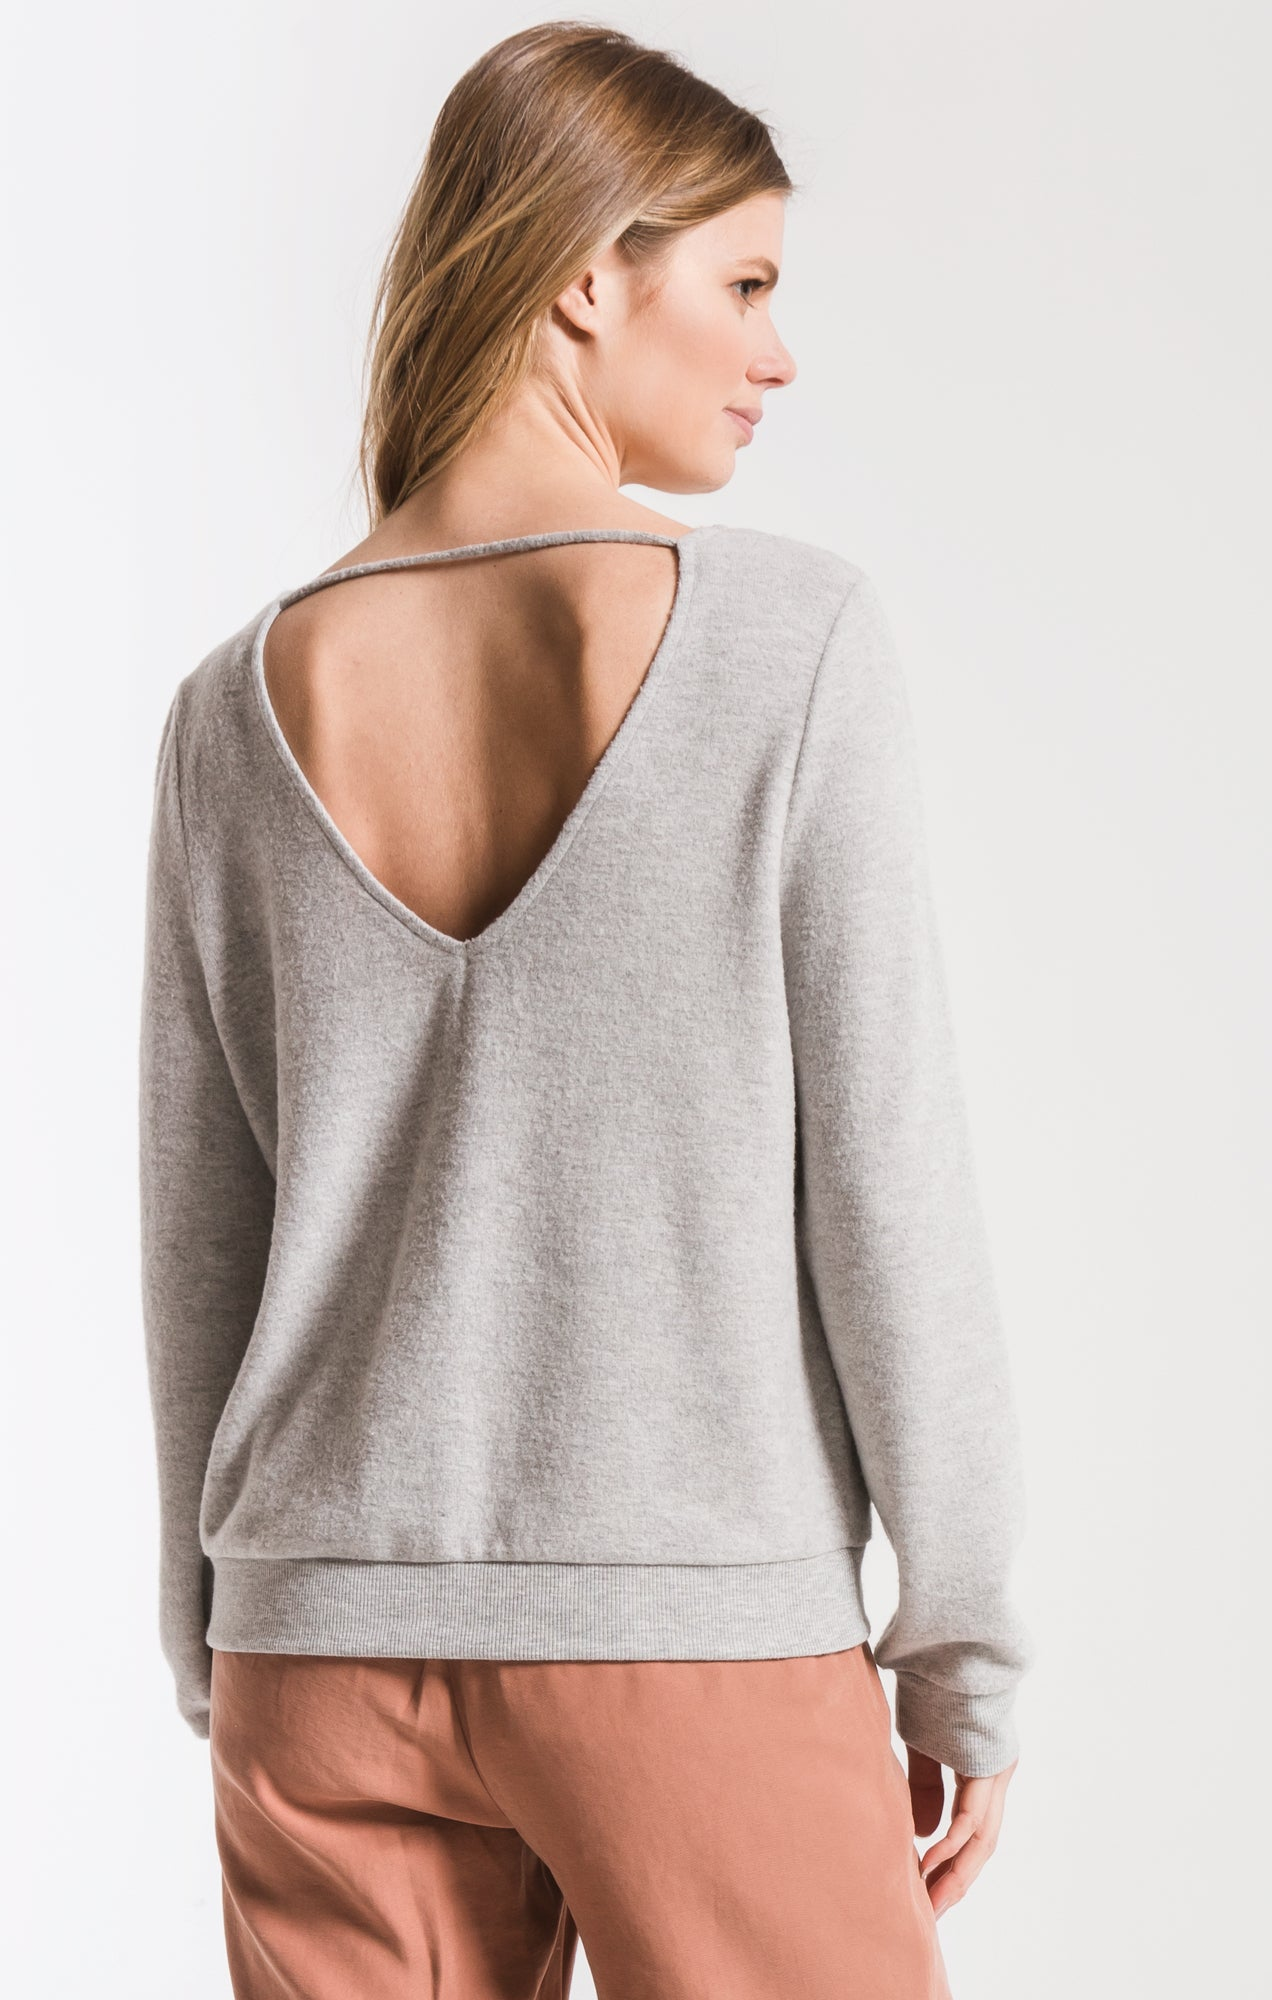 Tops The Soft Spun Strap Back Pullover Heather Grey